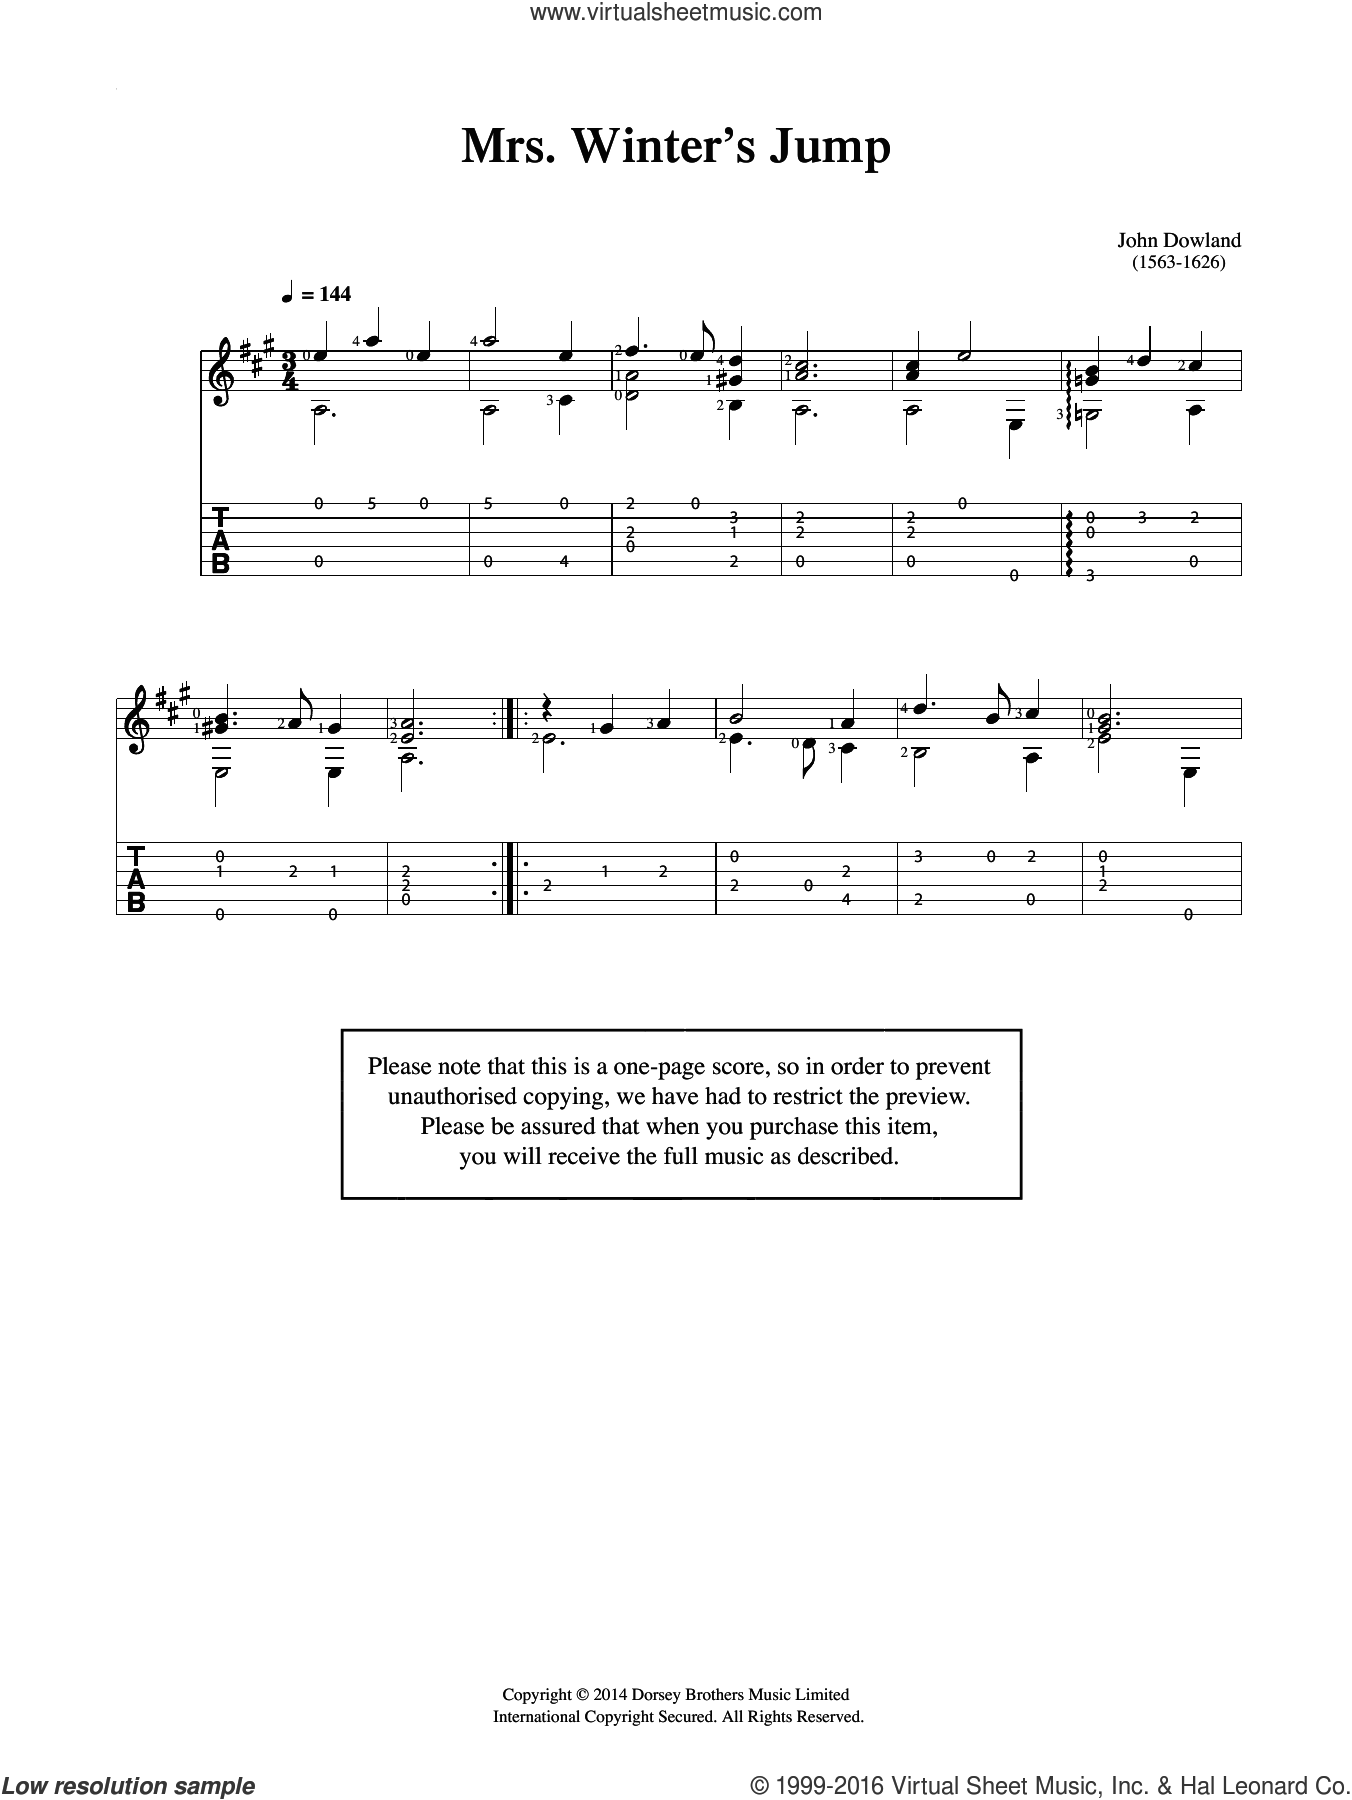 Mrs Winter's Jump sheet music for guitar solo (chords) by John Dowland, easy guitar (chords)